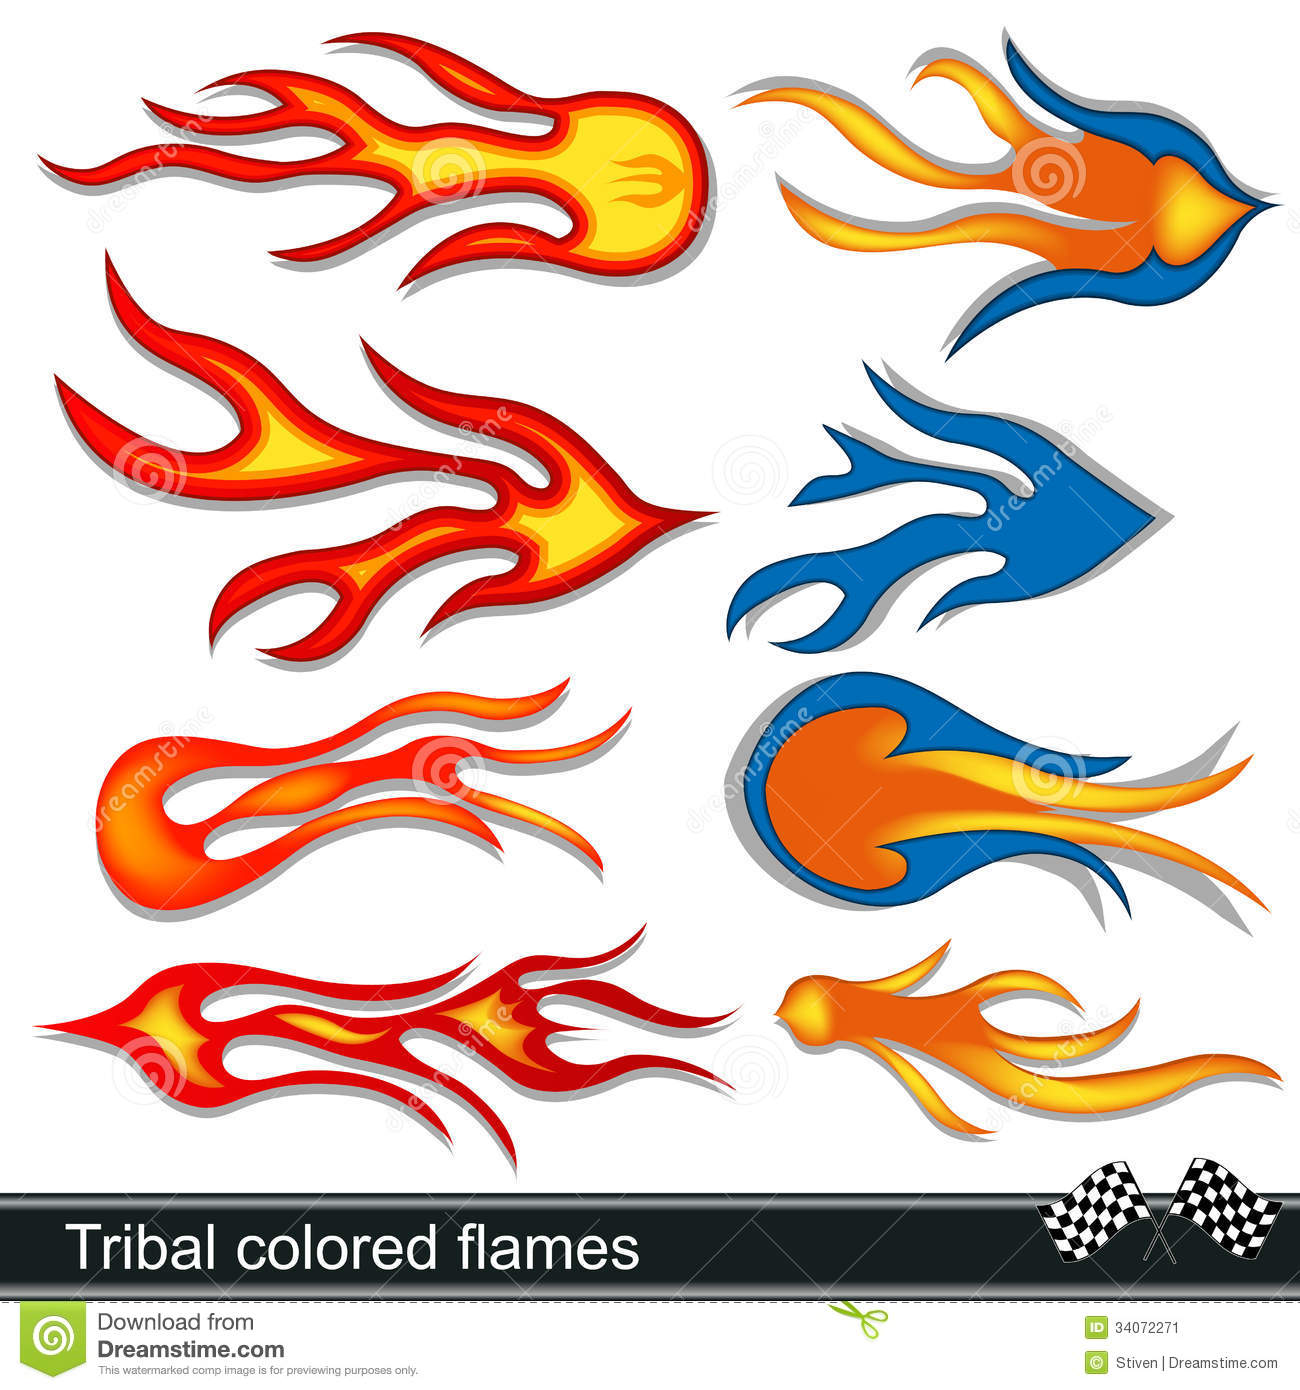 Tribal Colored Flames Design Stock Vector